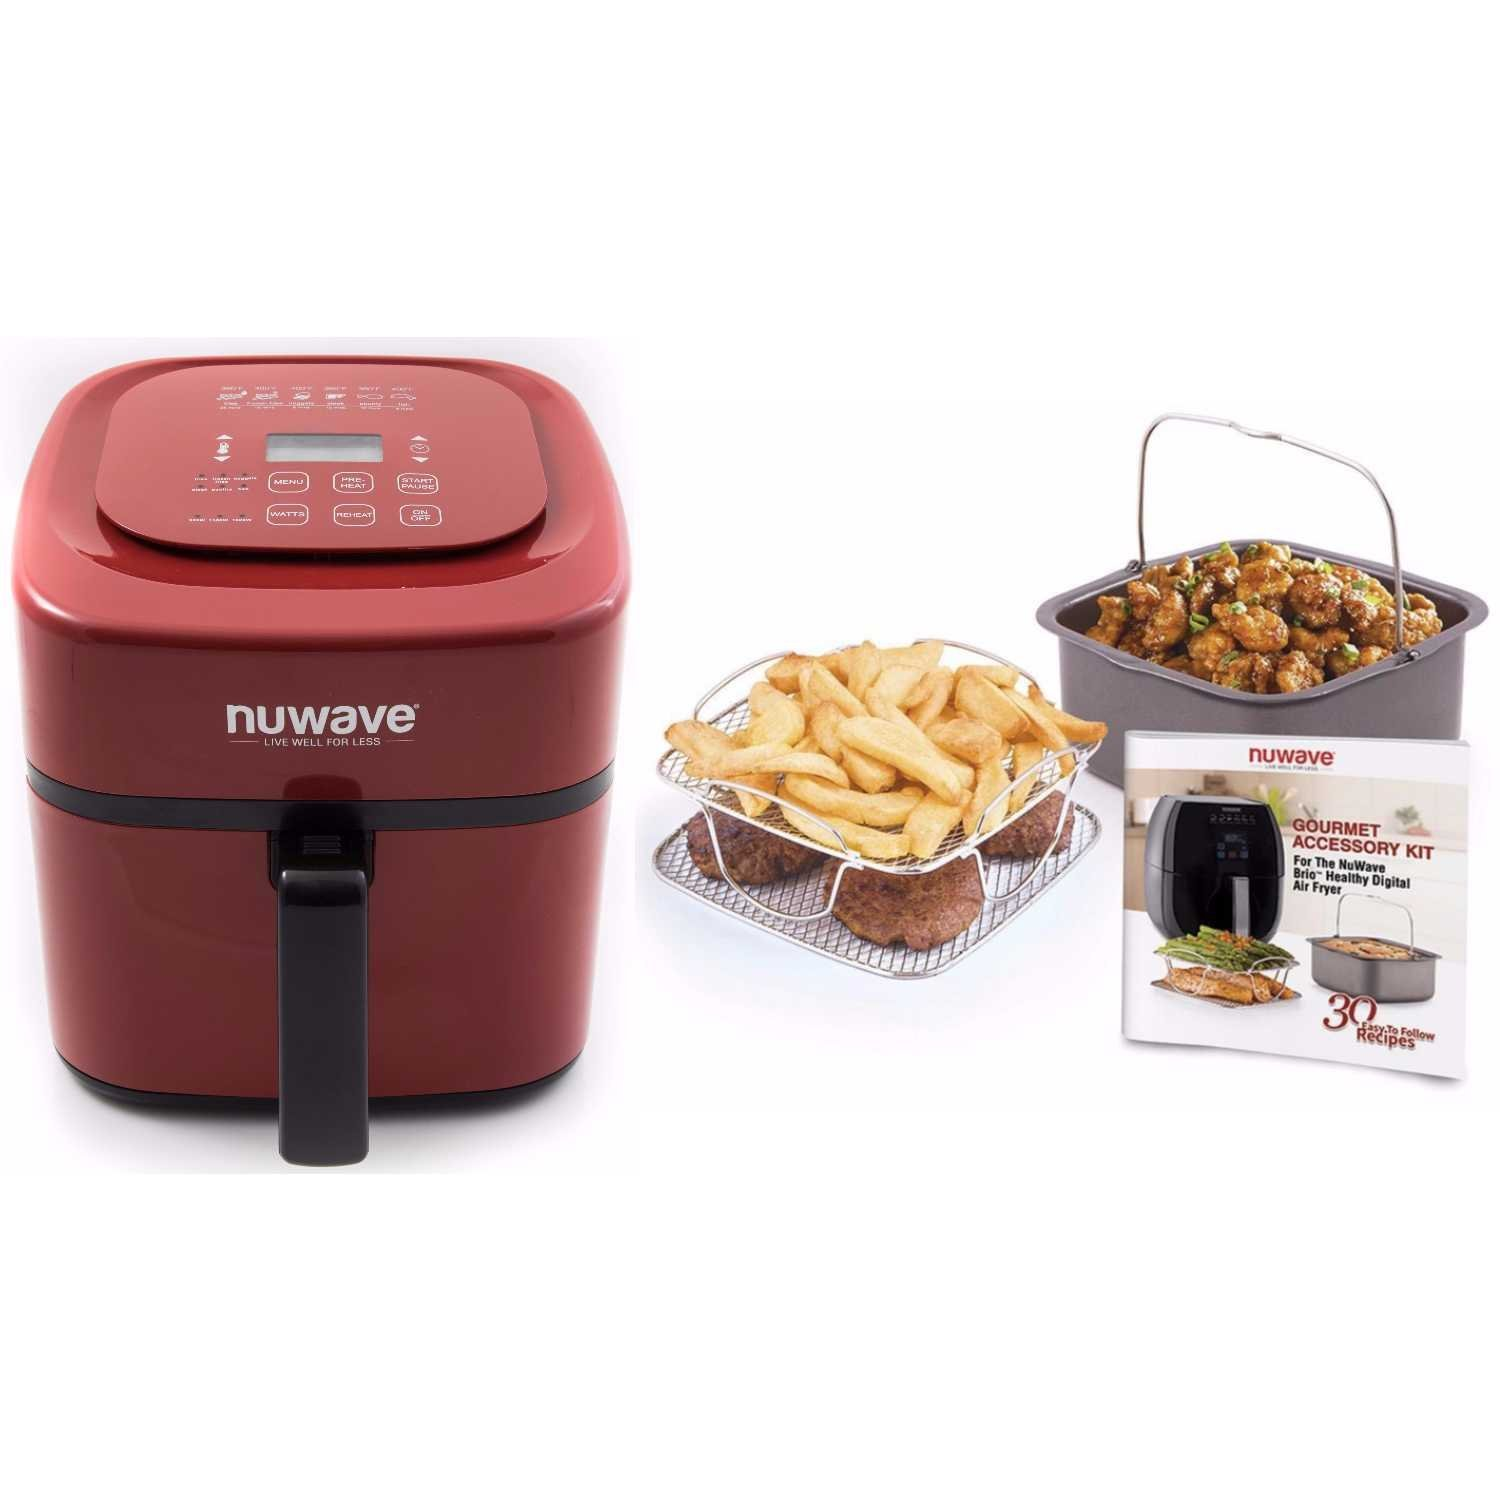 Nuwave Brio 6 Qt. Air Fryer-Red with Gourmet Accessory Kit